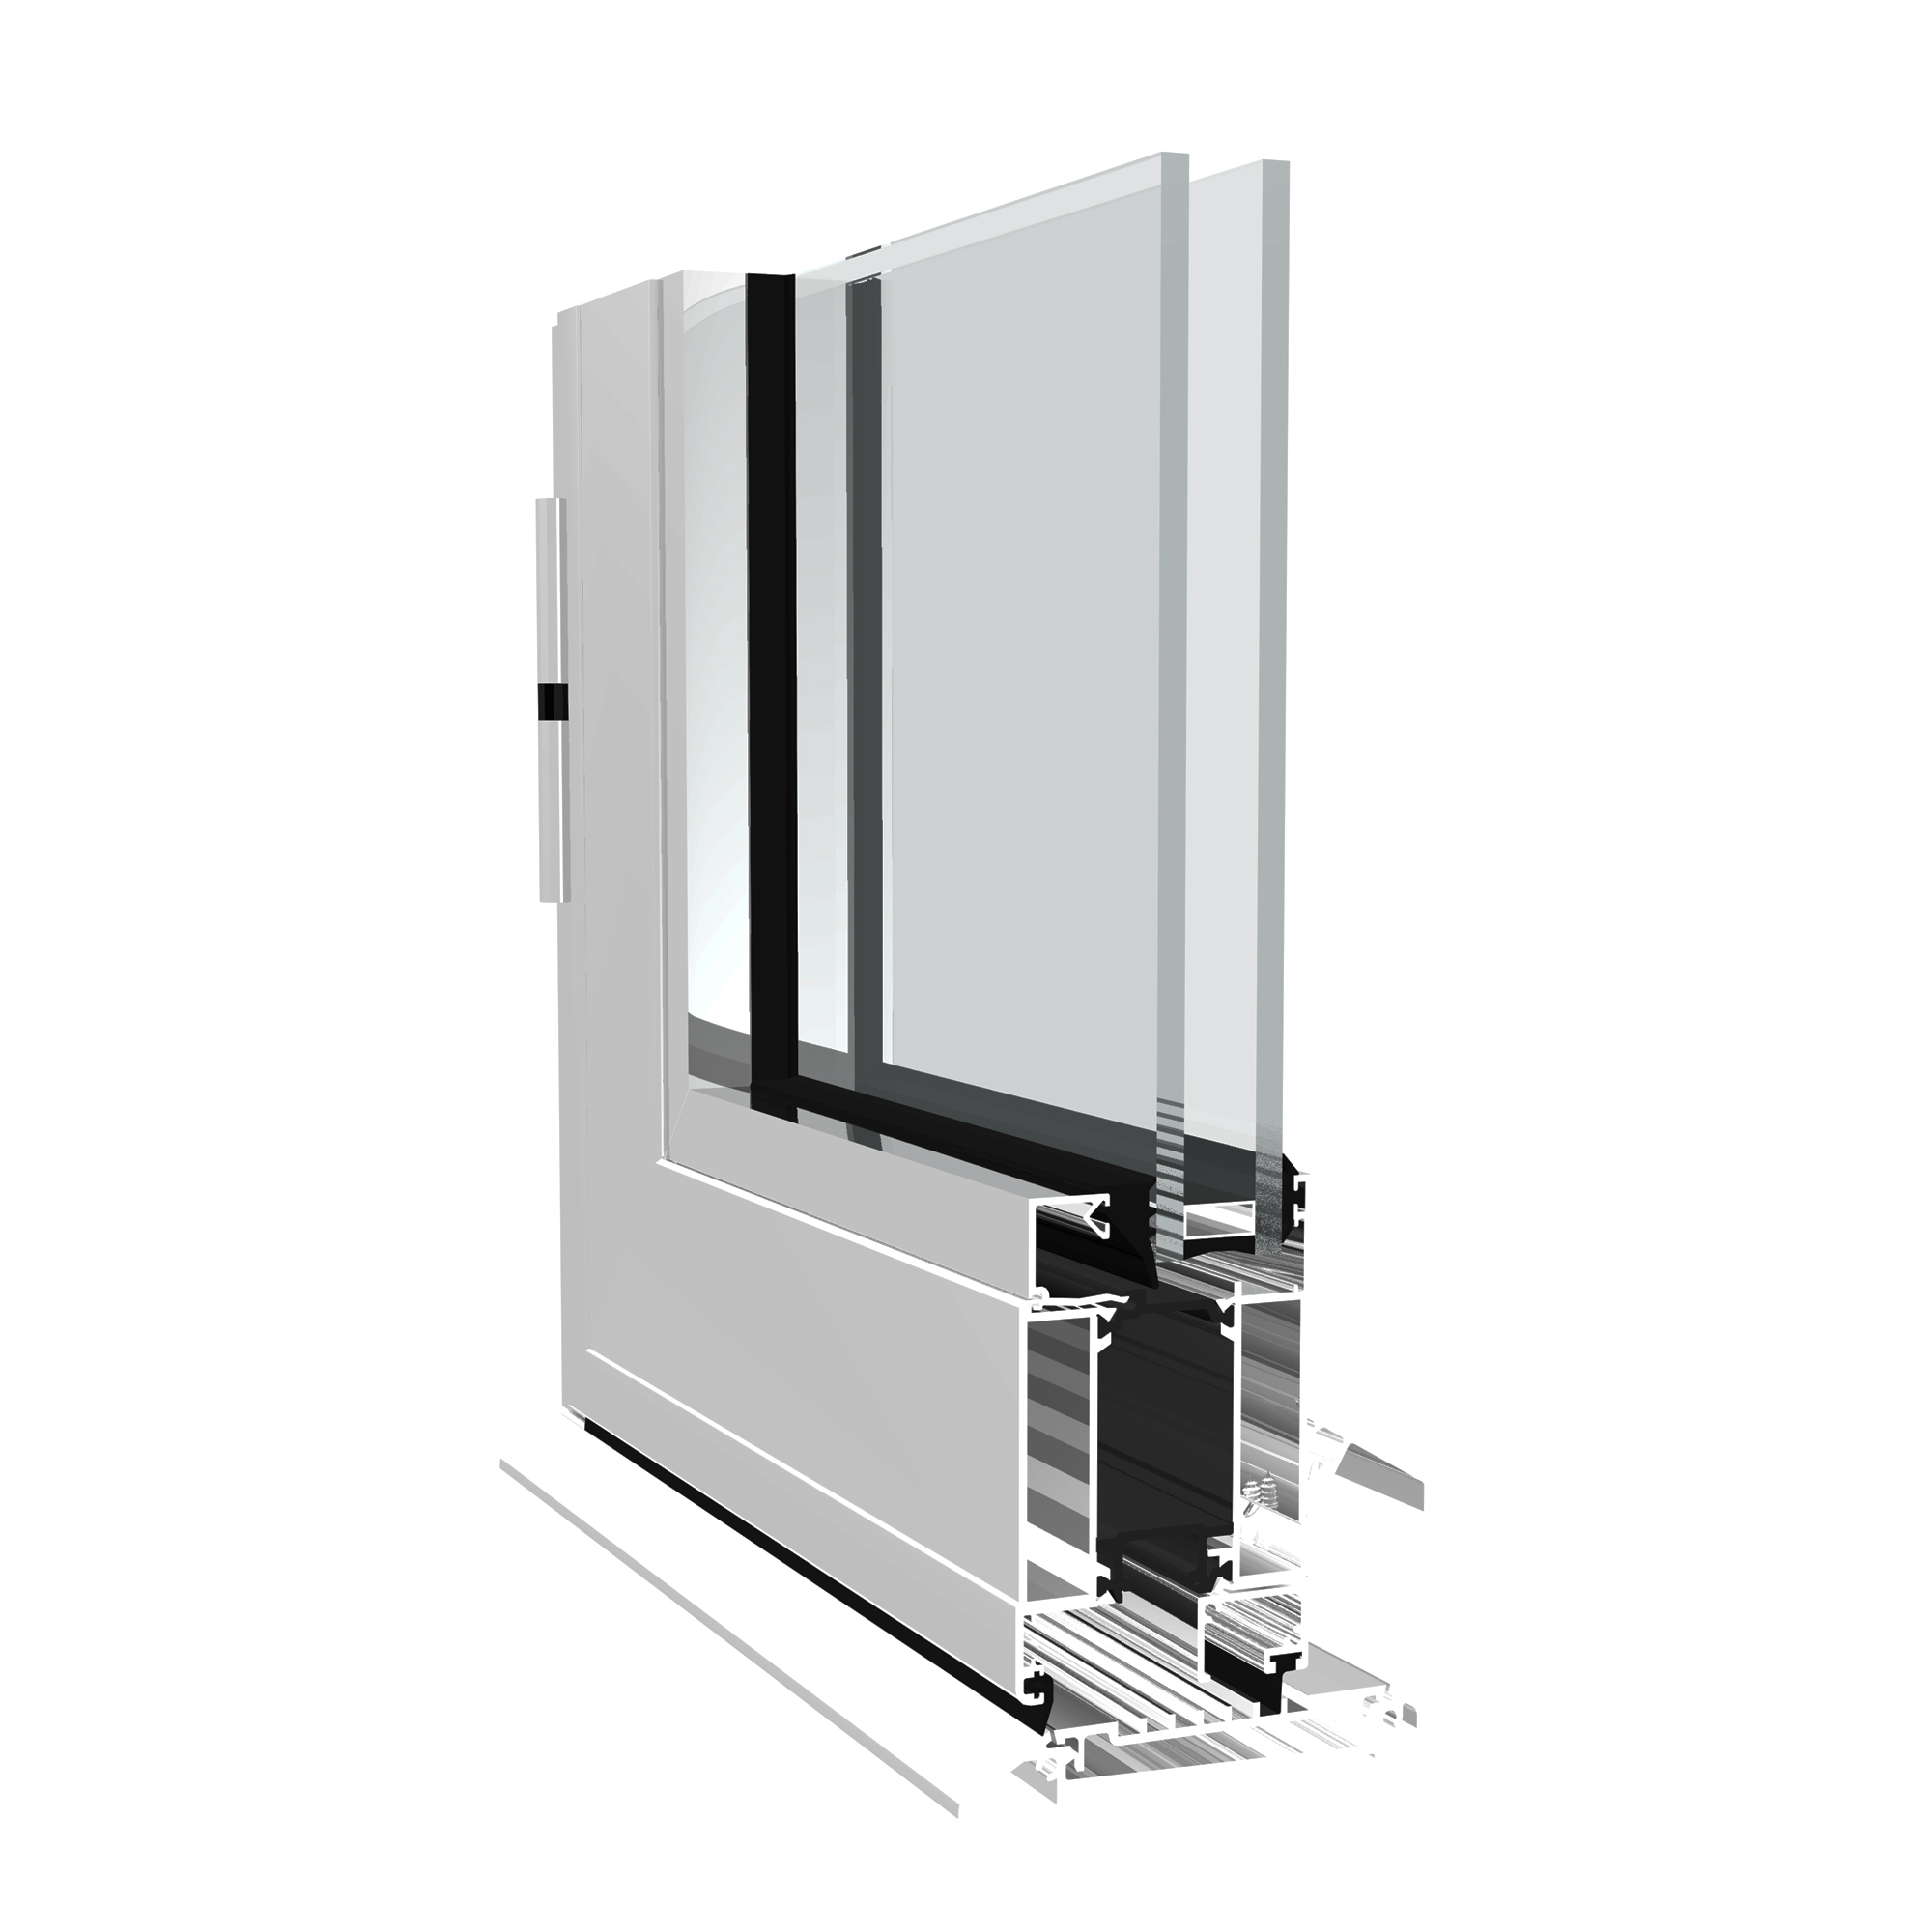 "Dualframe 75 aluminium ""High Performance"" door from Sapa"